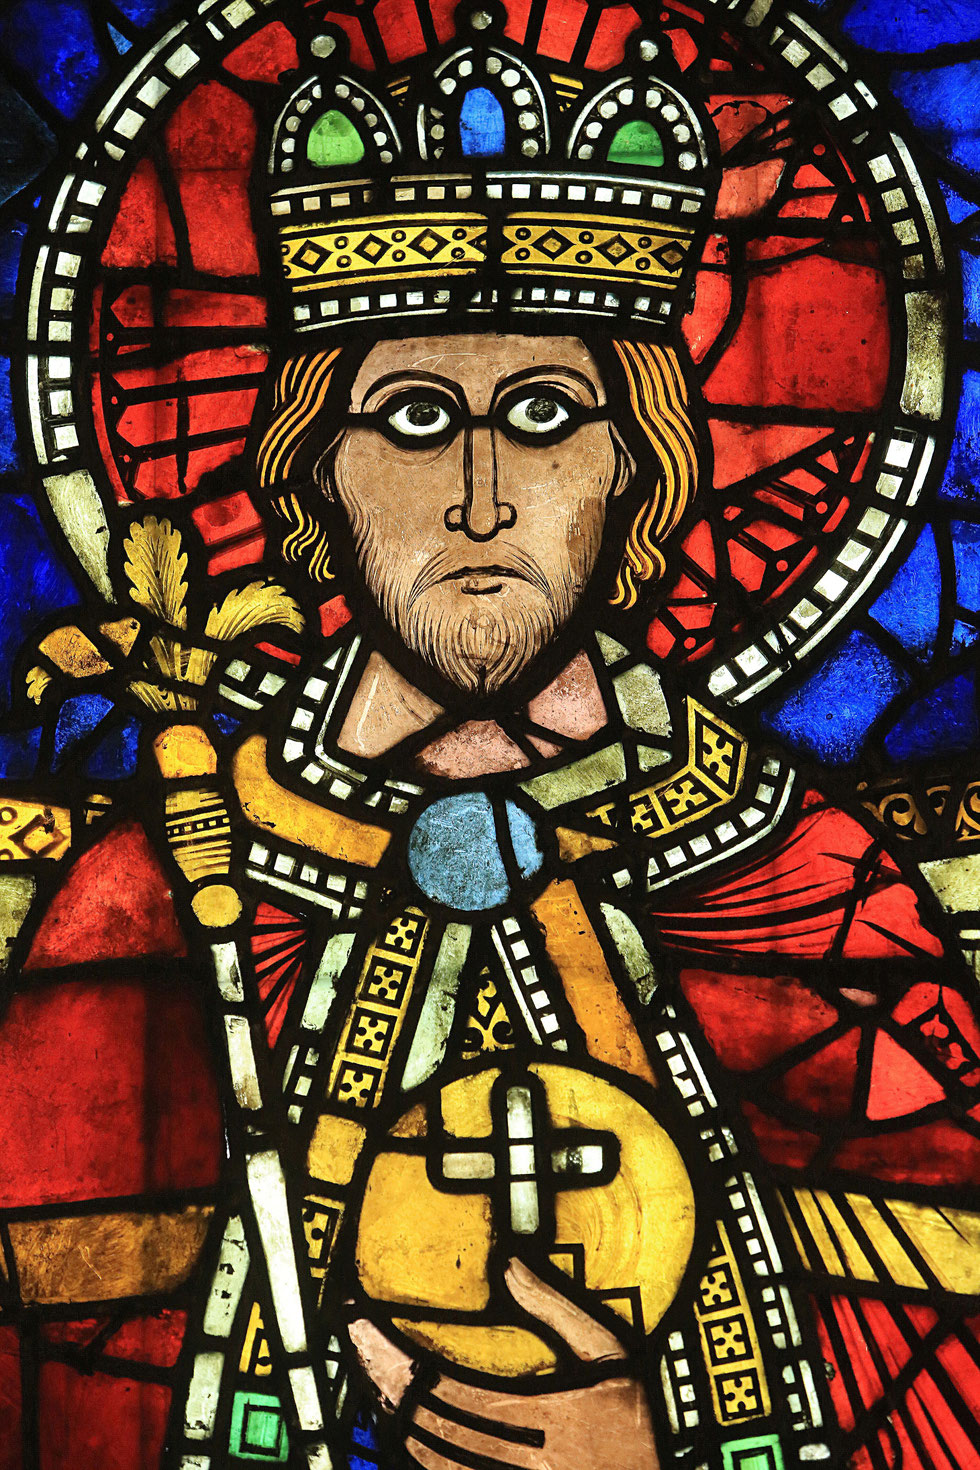 Emperor Majesty. (Henry II or Charlemagne). Last quarter of the twelfth century. Oeuvre Notre Dame Museum in Strasbourg.